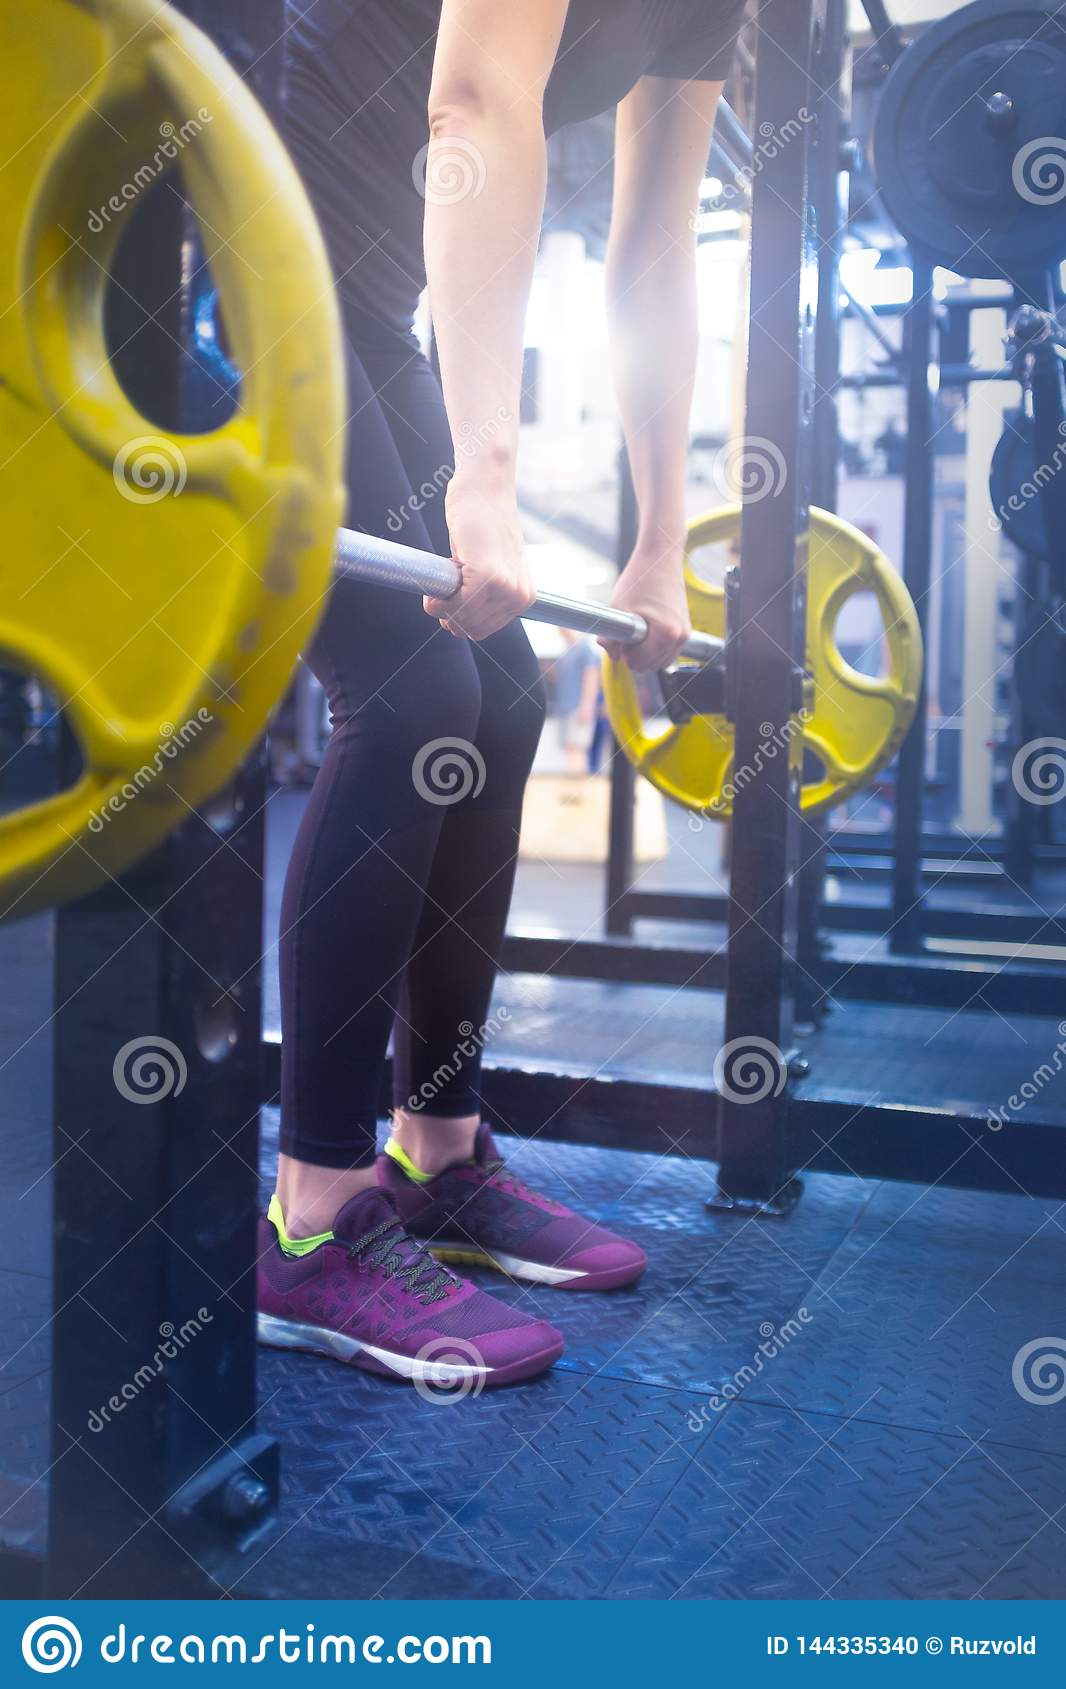 Woman With A Barbell Doing Exercises In The Gym Stock Photo Image Of Athletic Machine 144335340